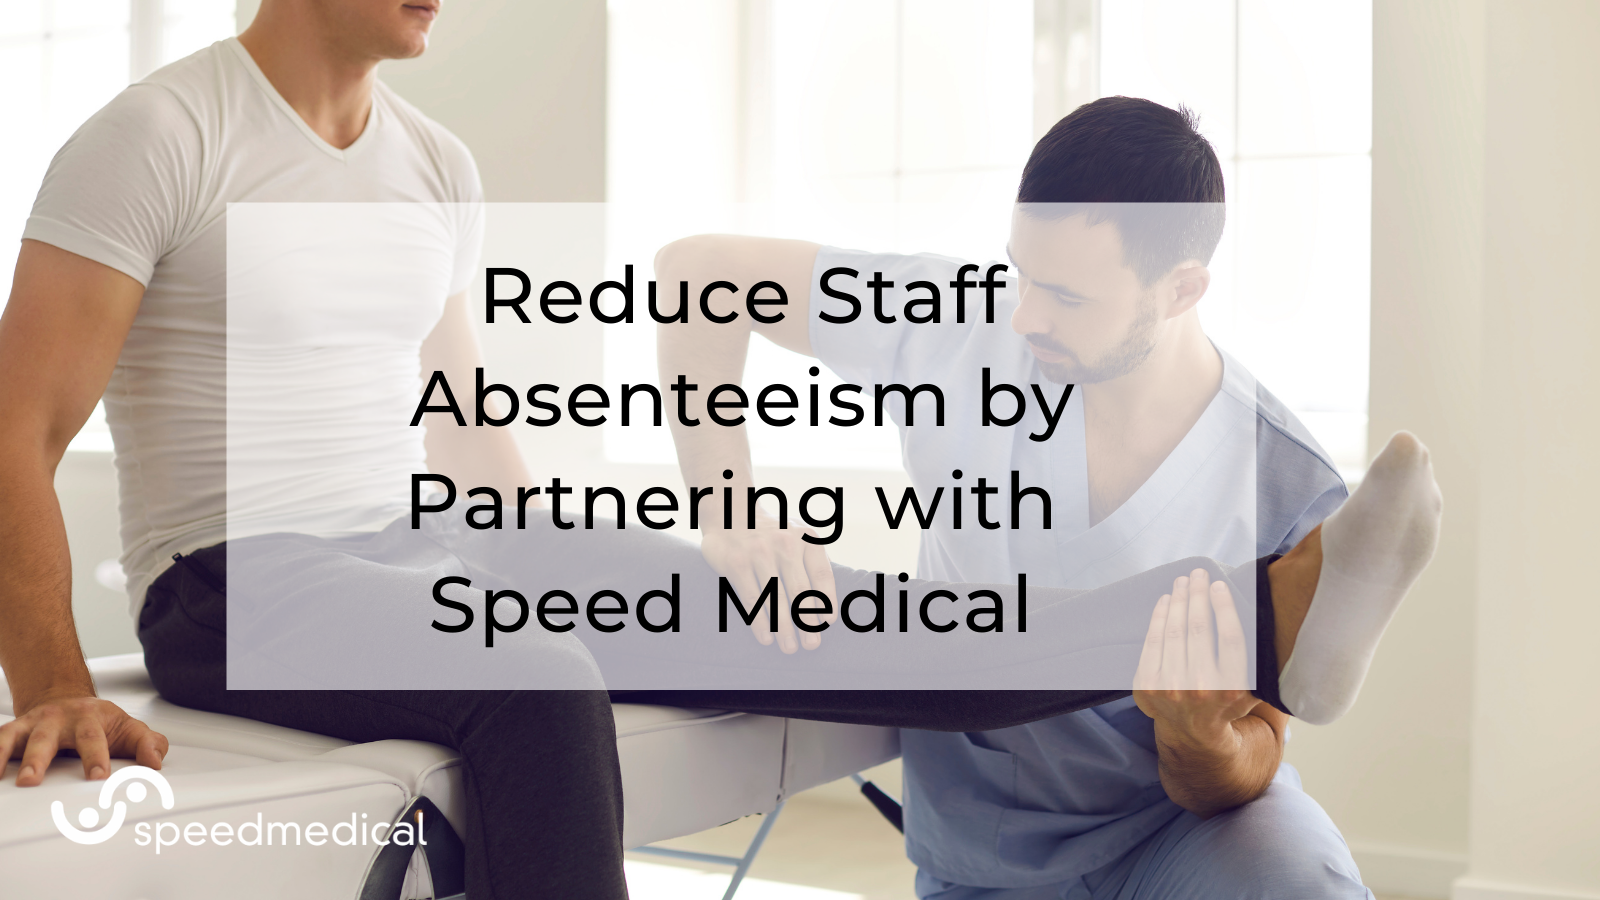 Reduce Staff Absenteeism by Partnering with Speed Medical